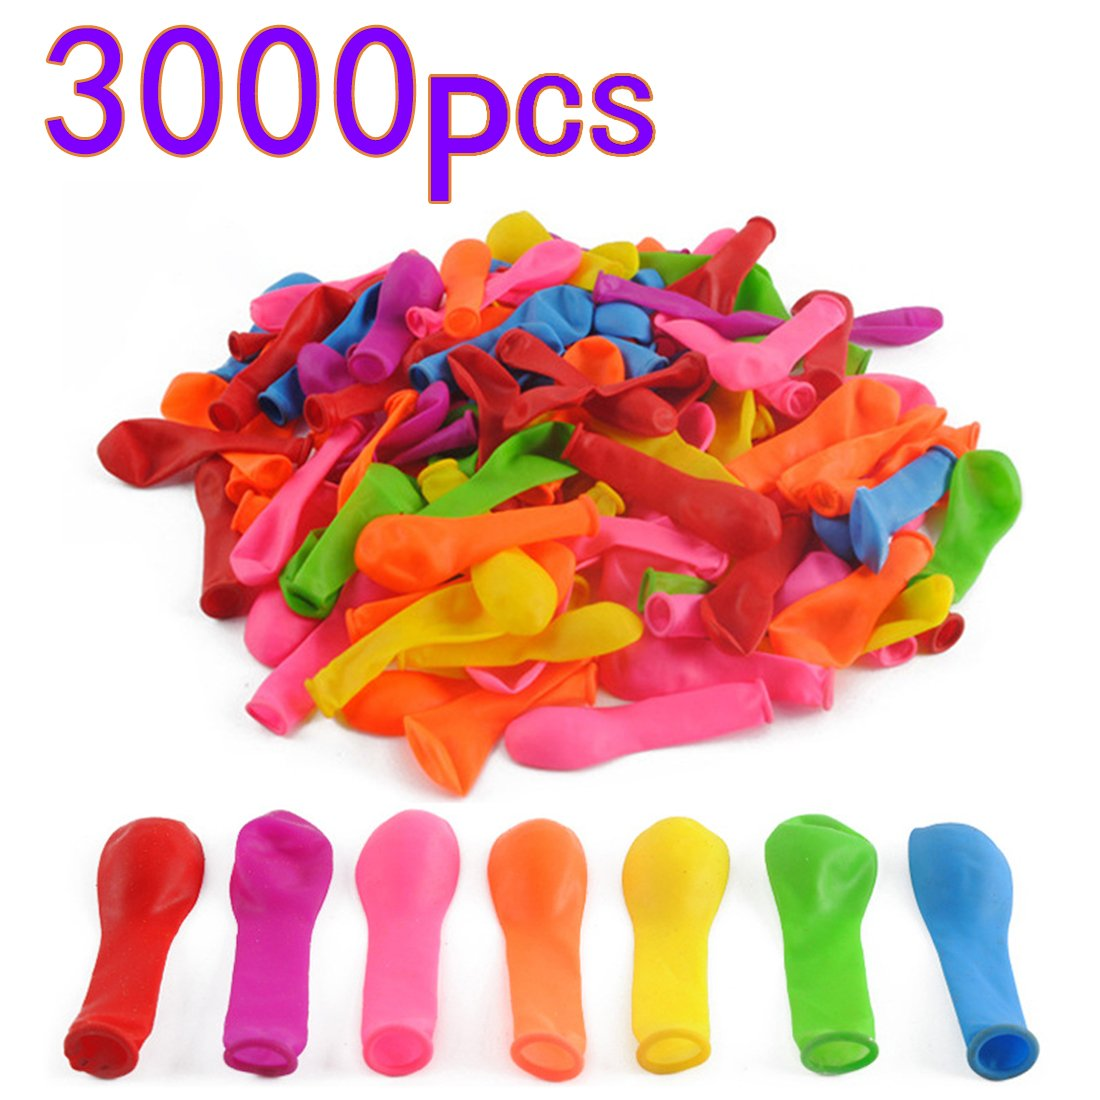 Goshfun 3000 Pcs Water Balloons Refill Kit Instant Water Latex Water Bomb Balloons Summer Splash Fun for Kids Adults - Colorful by Goshfun